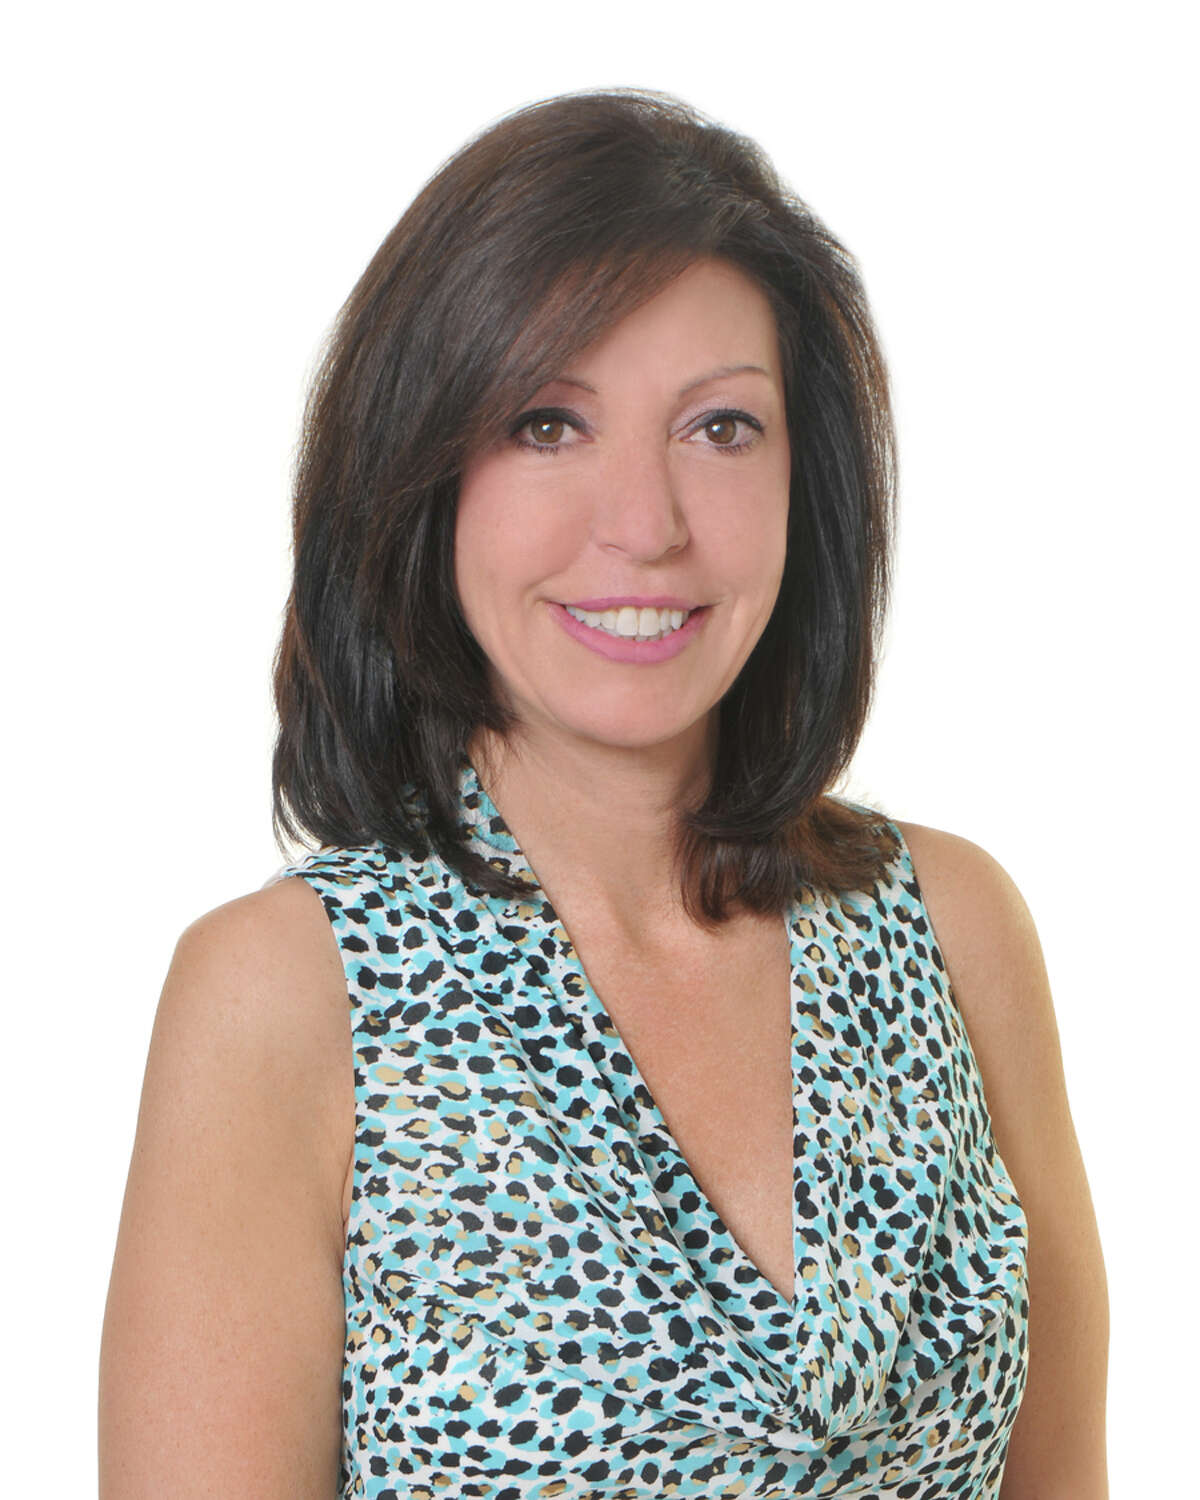 William Raveis Real Estate in New Canaan awarded also Maria Miller for Customer Service for the month of January. Marie Miller